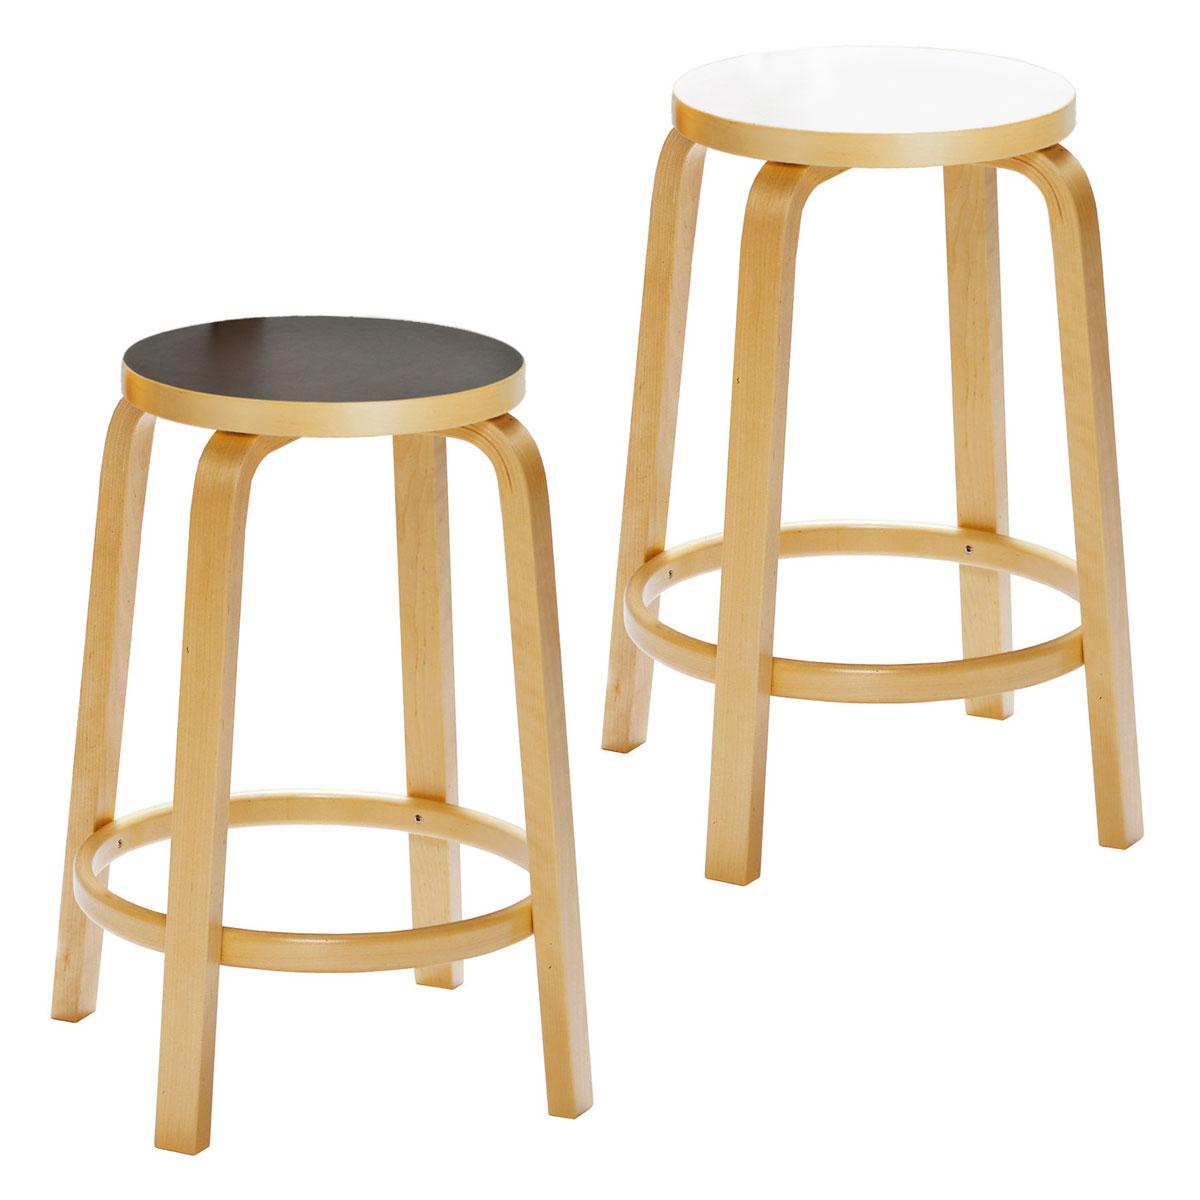 Kitchen Stool Bar Stool Artek Alvar Aalto Kitchen